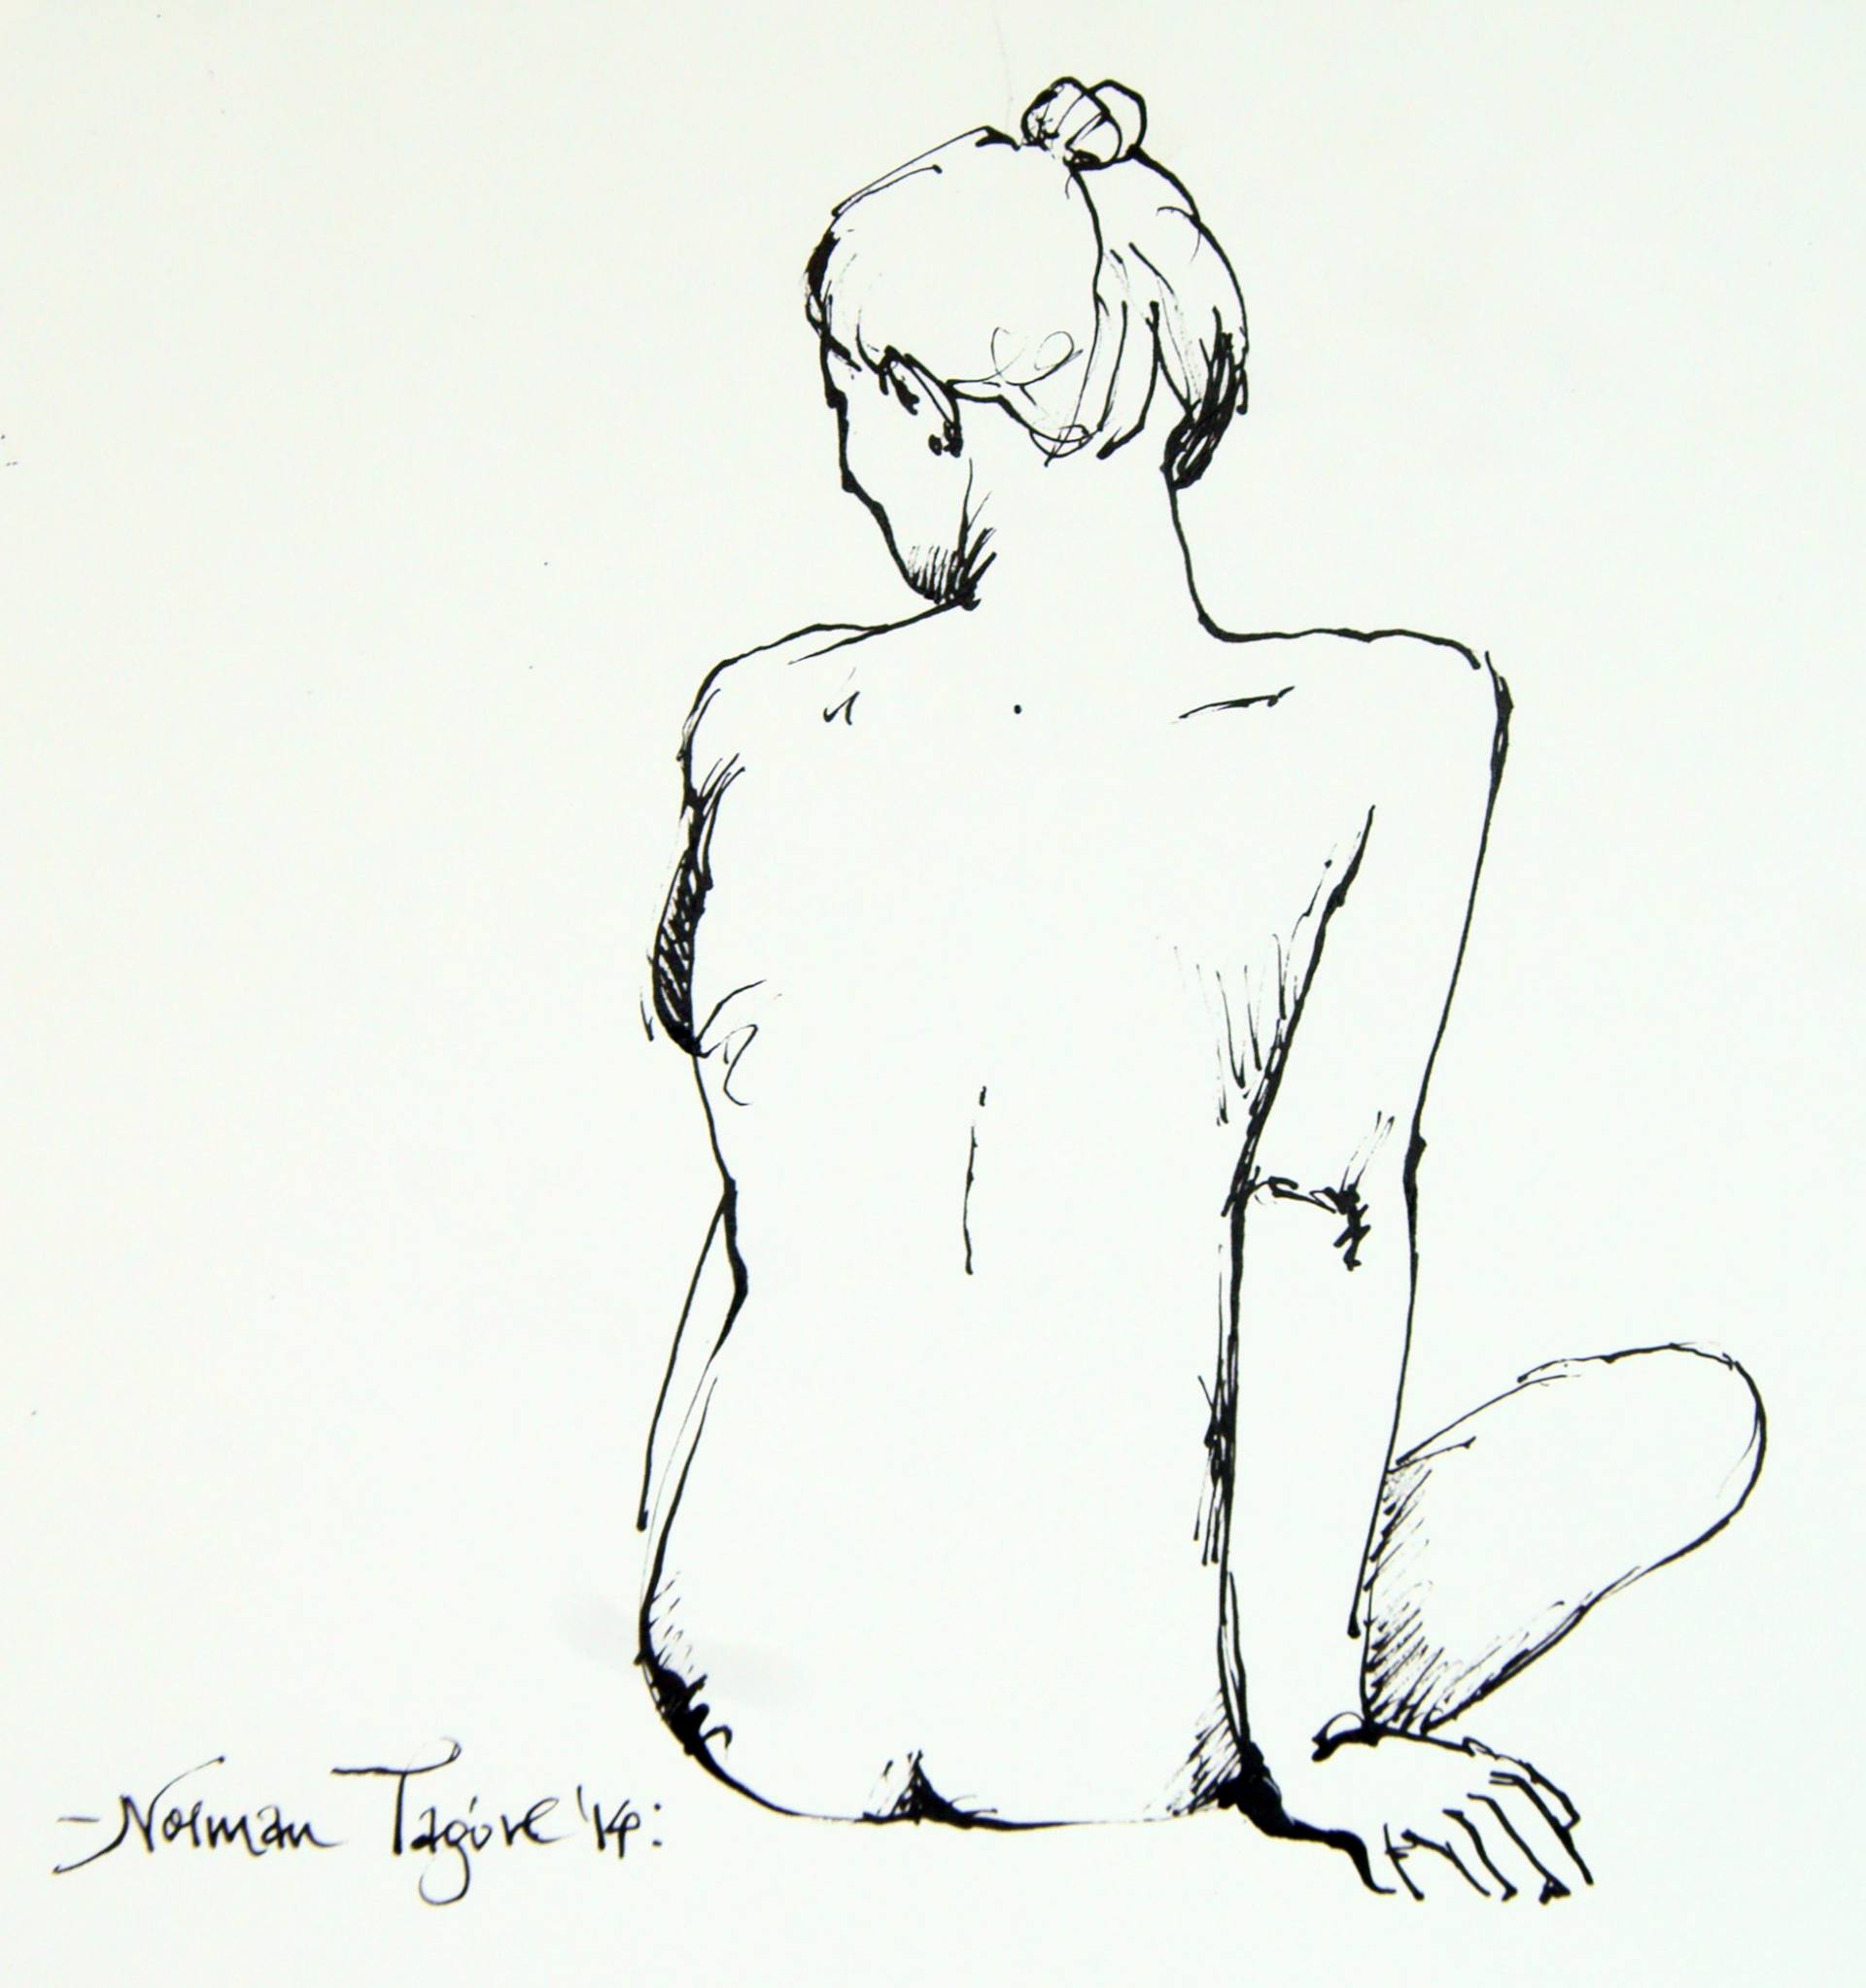 1920x2046 Saatchi Art A Nude Sketch. Drawing By Norman Tagore